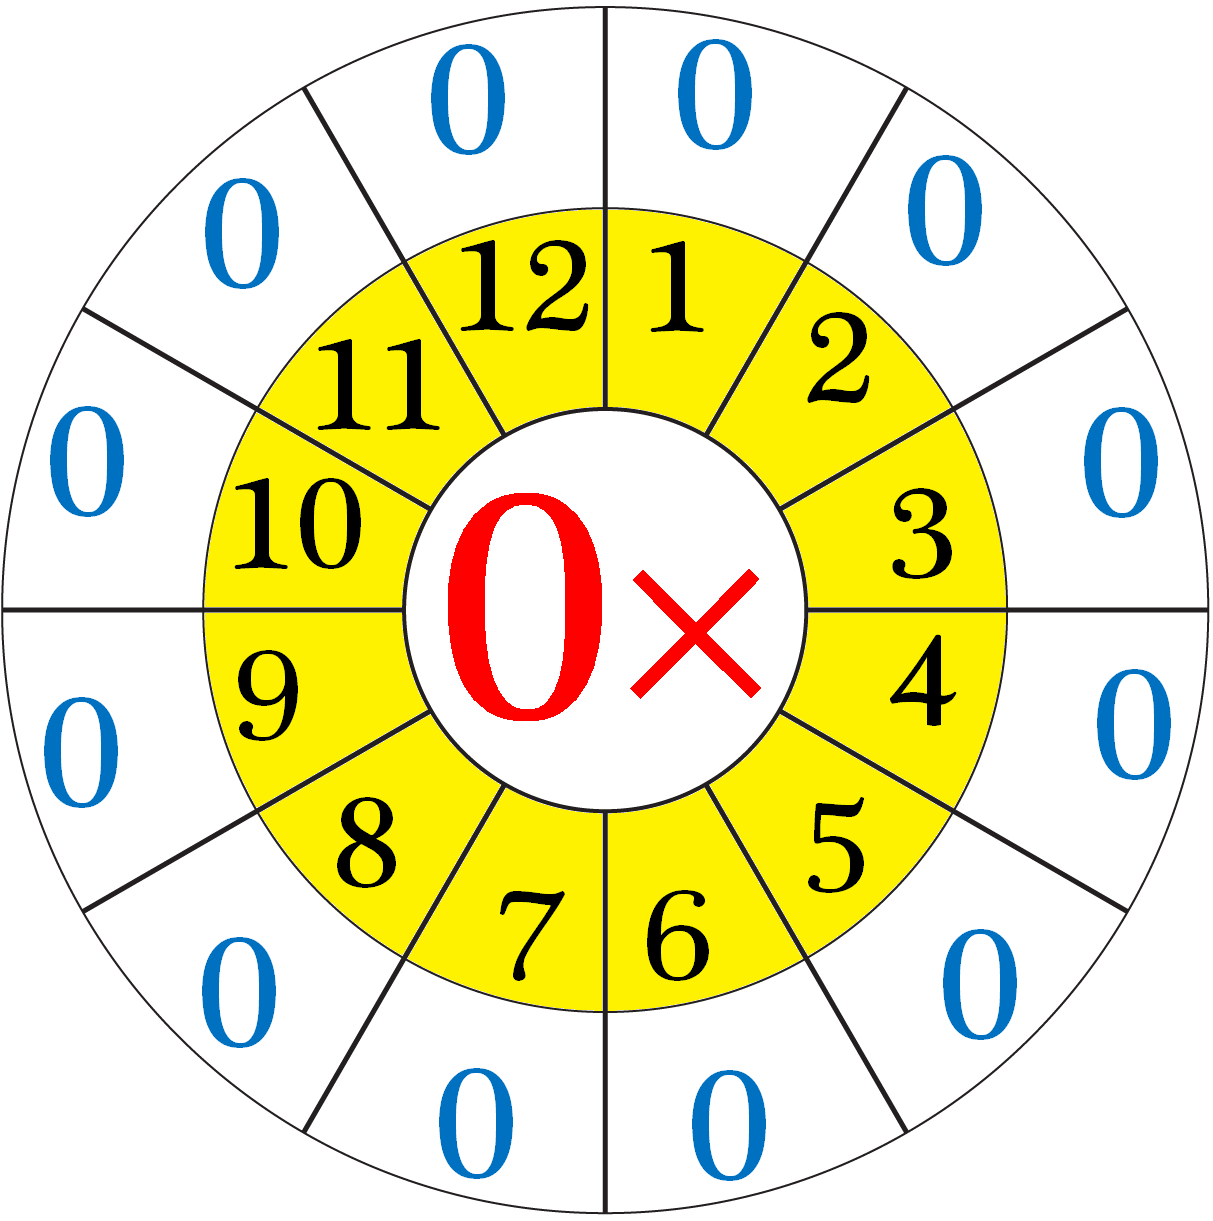 Multiplication Table of 0